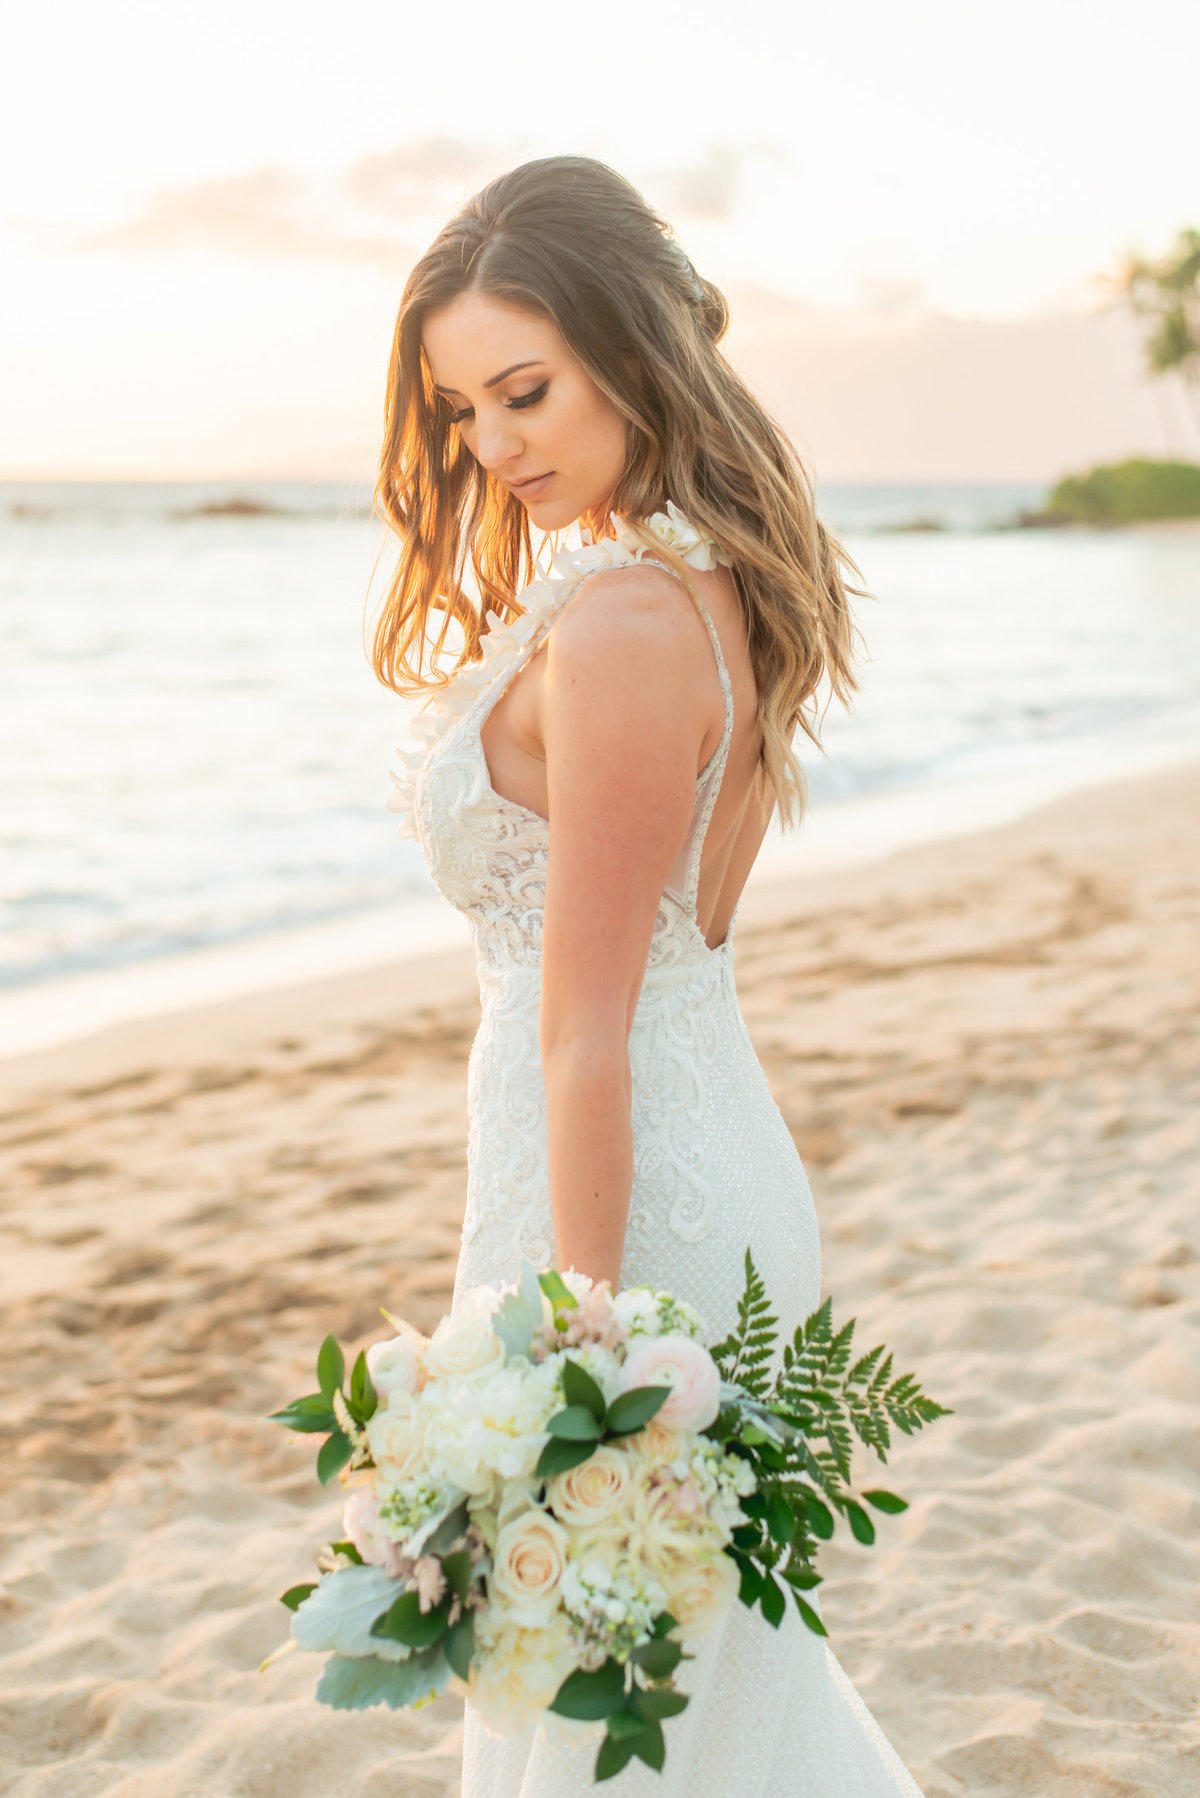 Maui wedding photography - bride